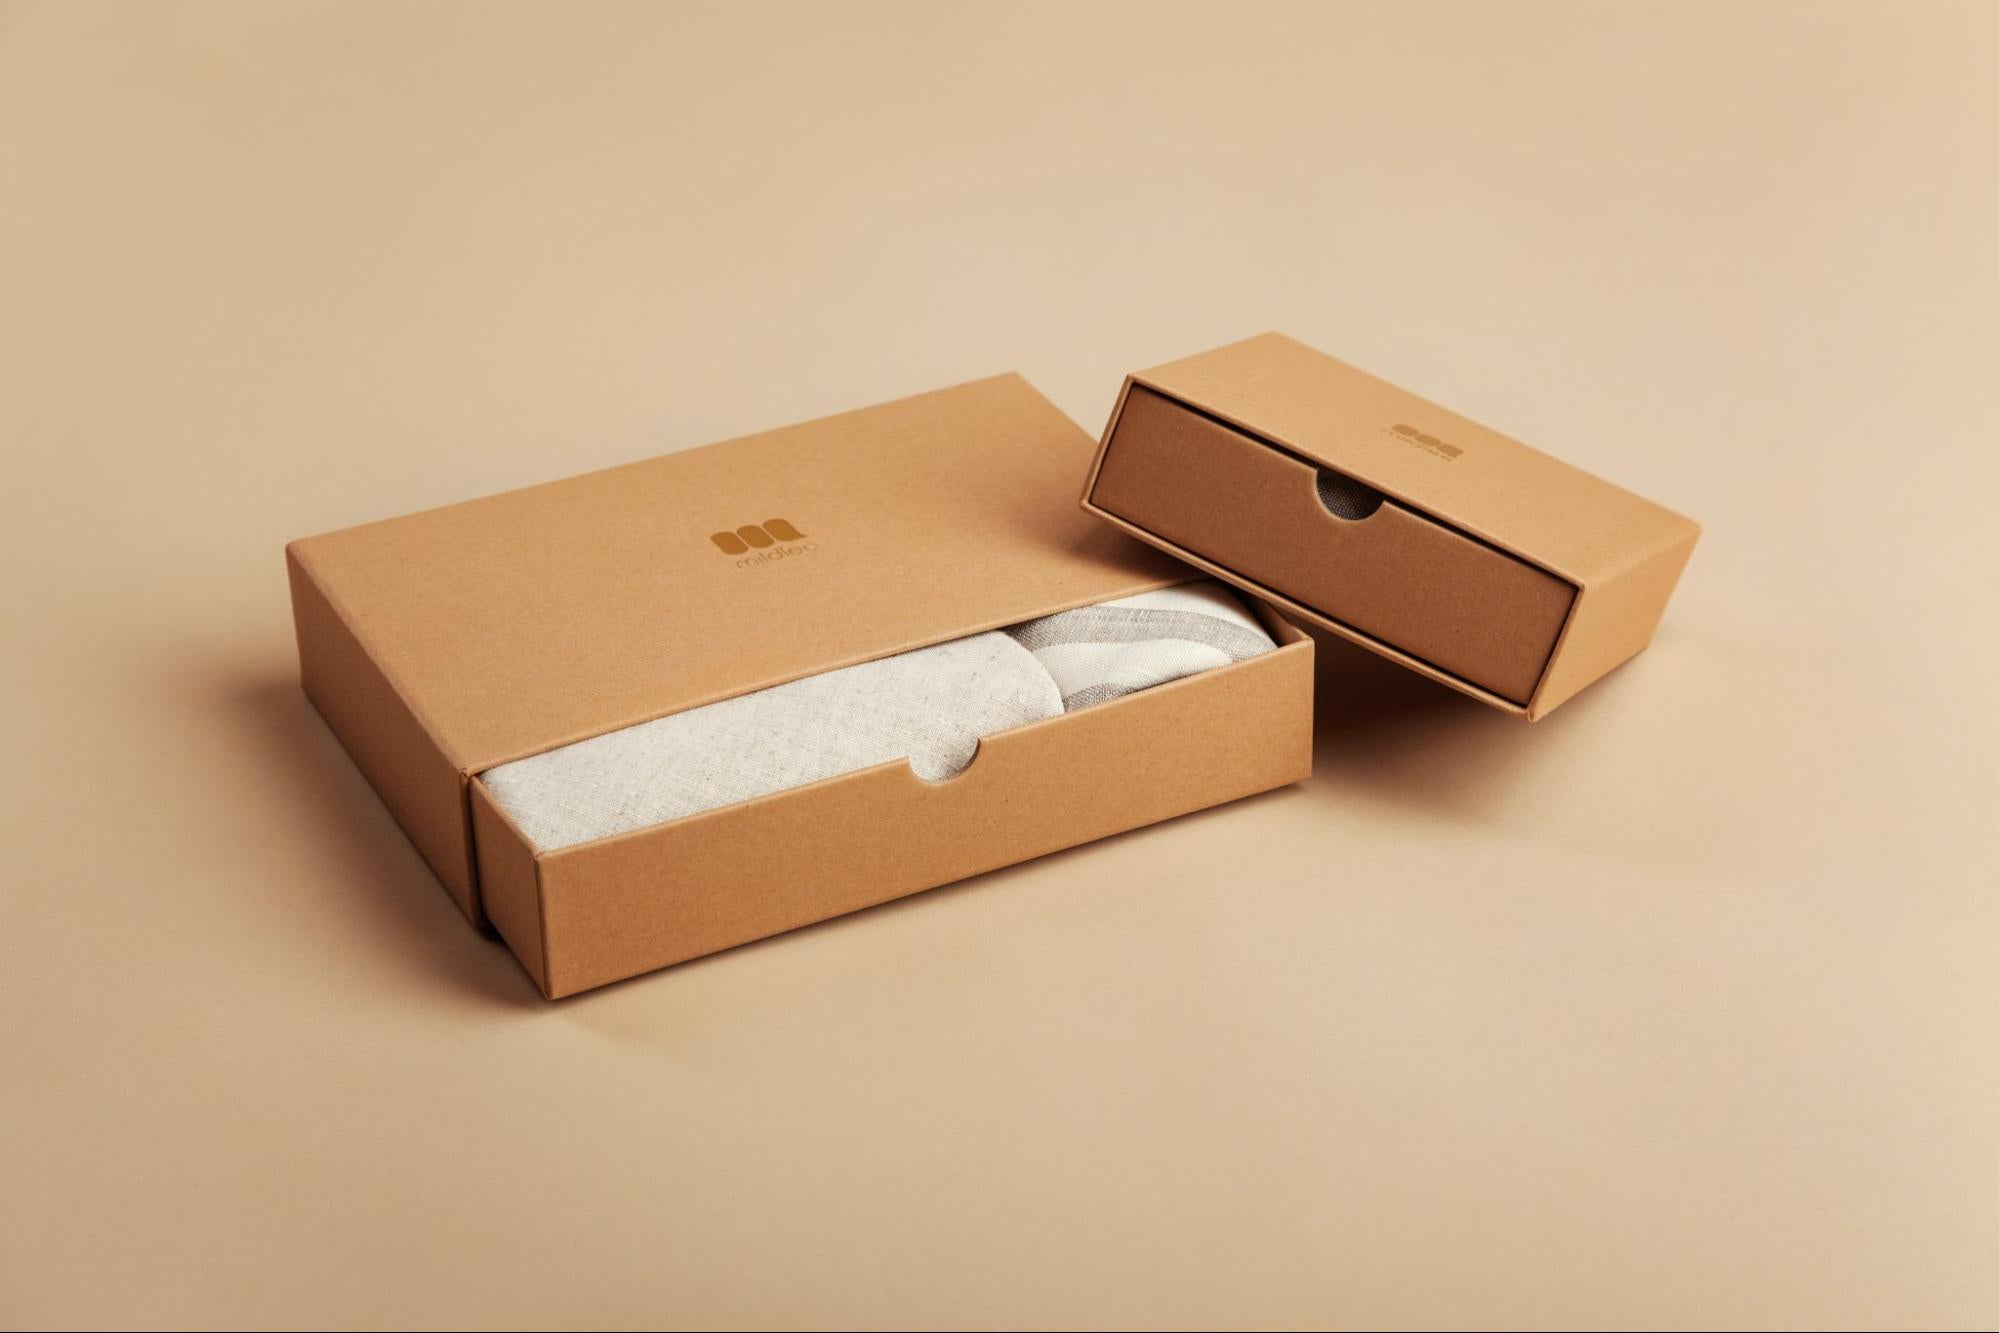 Subscription commerce shipping boxes